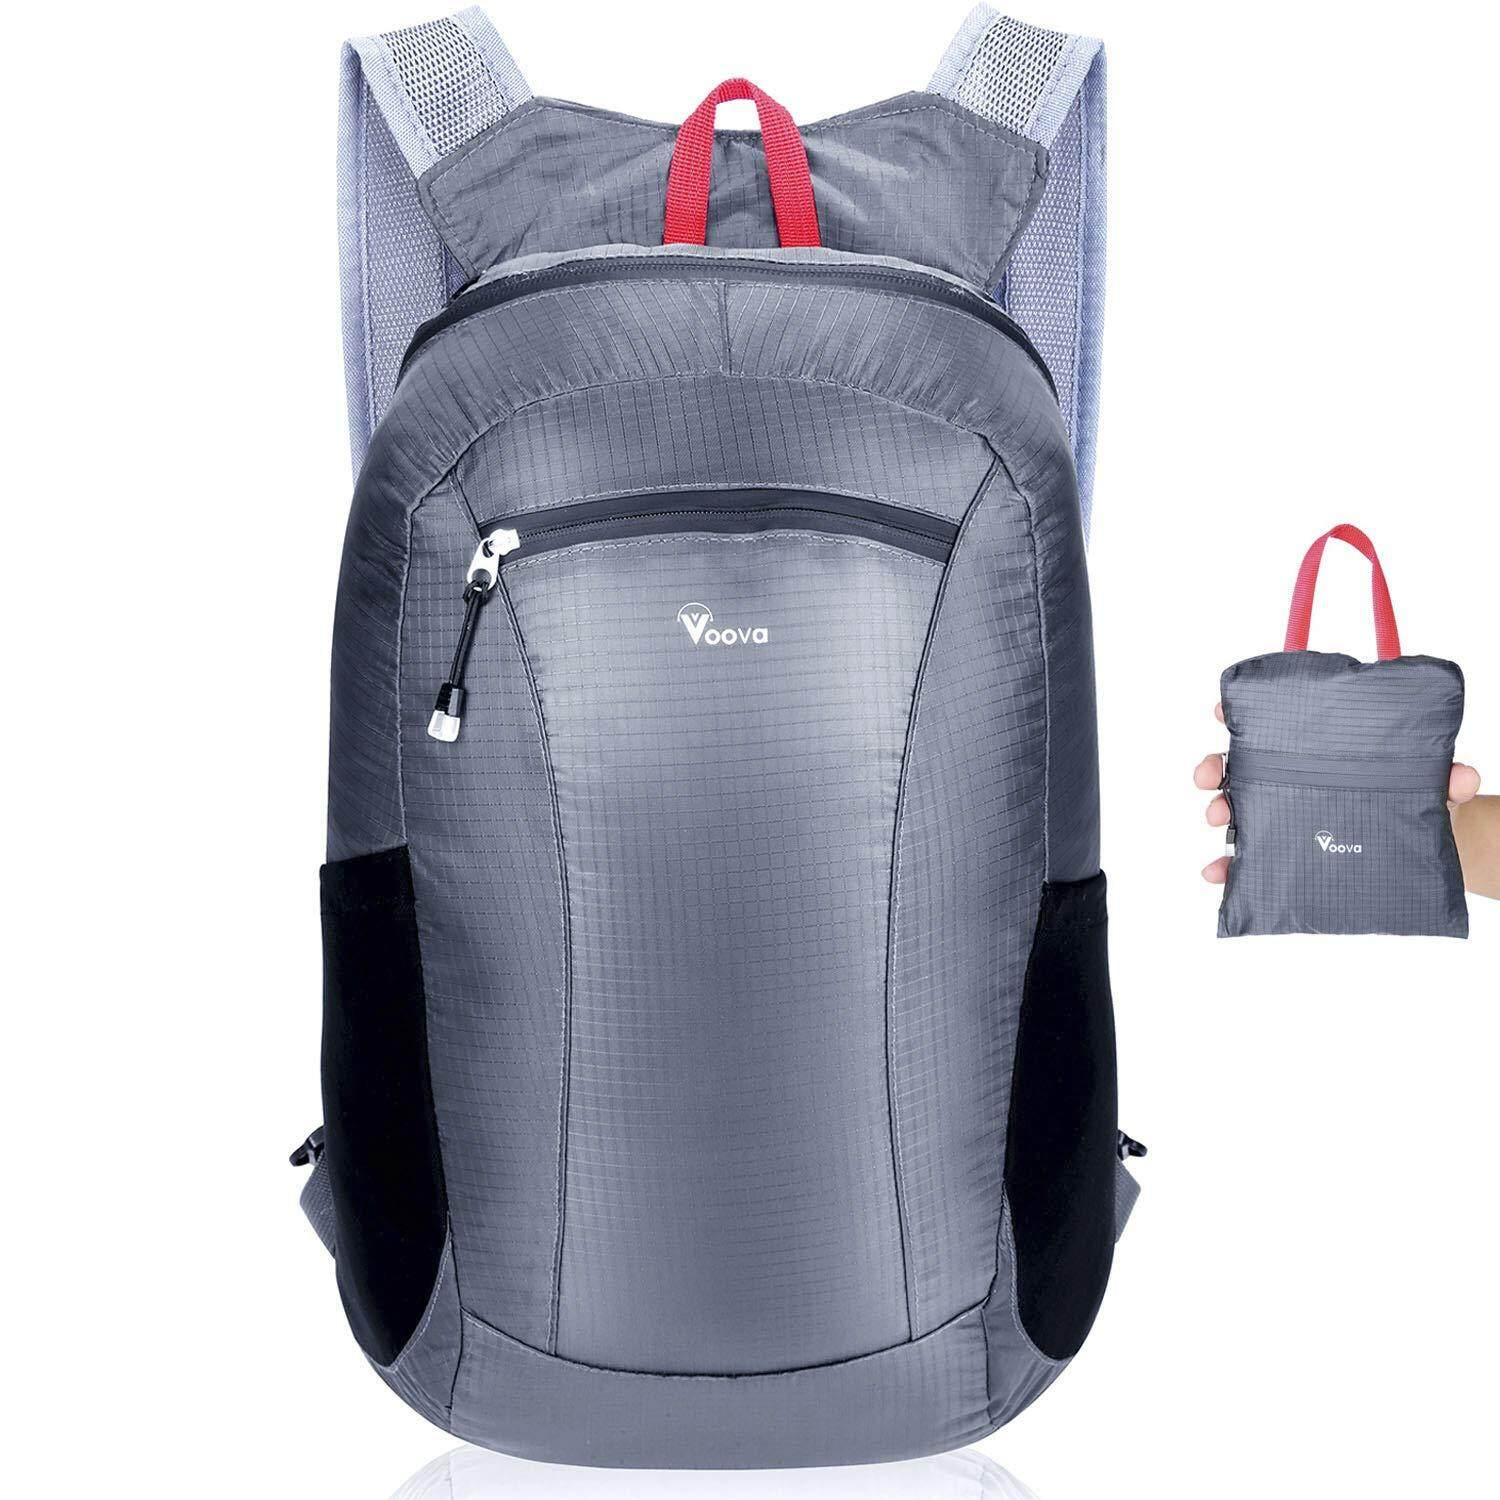 e9c3600a0986 Lightweight Backpack, Ultra Lightweight Packable Backpack Water Resistant  Hiking Daypack for Women Men, Small Backpack Handy Foldable Climbing  Camping ...